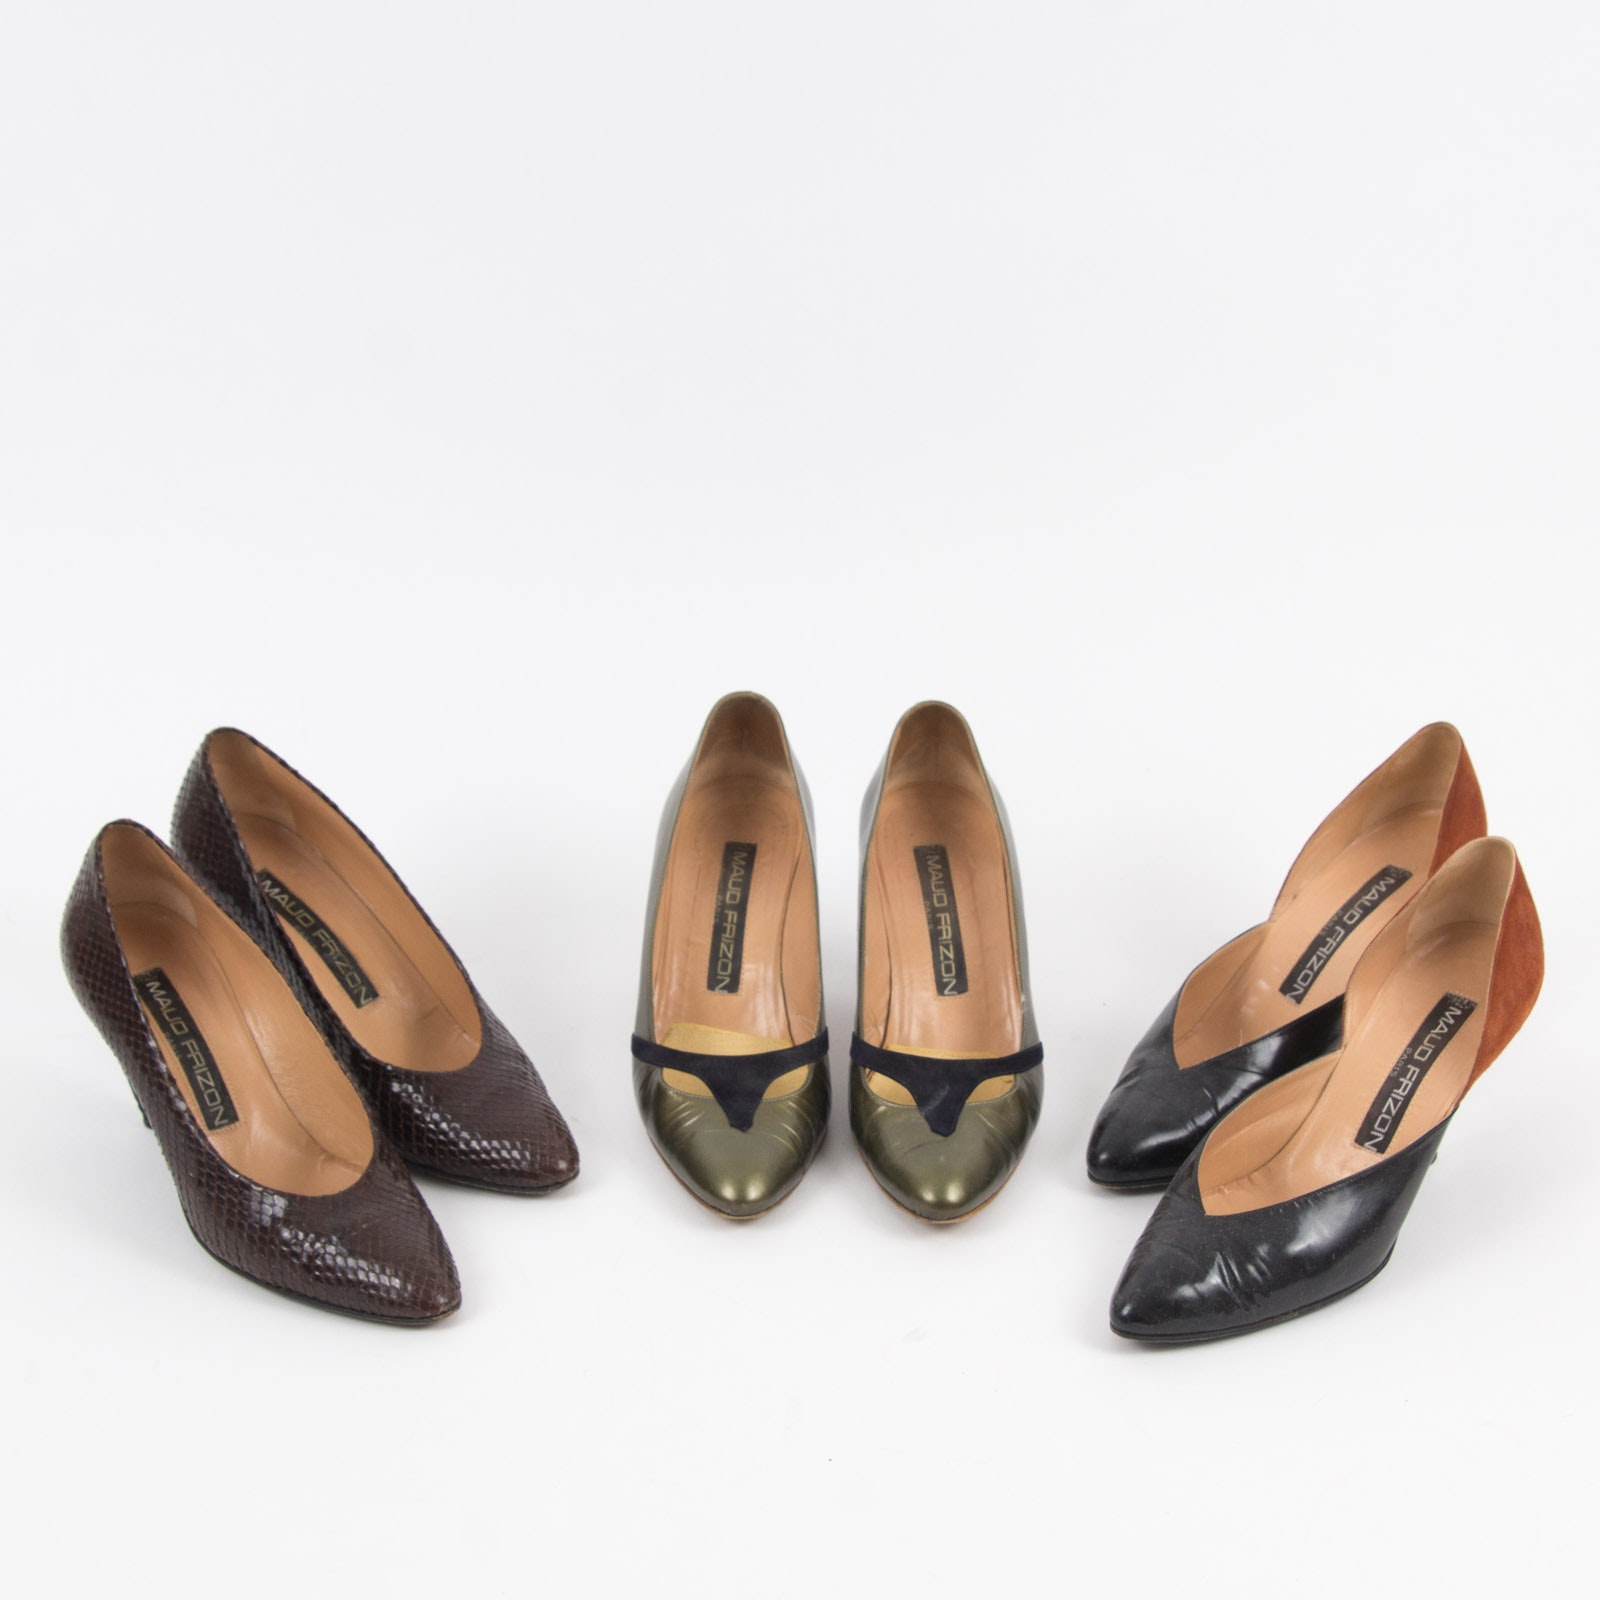 Three Pairs of Maud Frizon Designer Heels